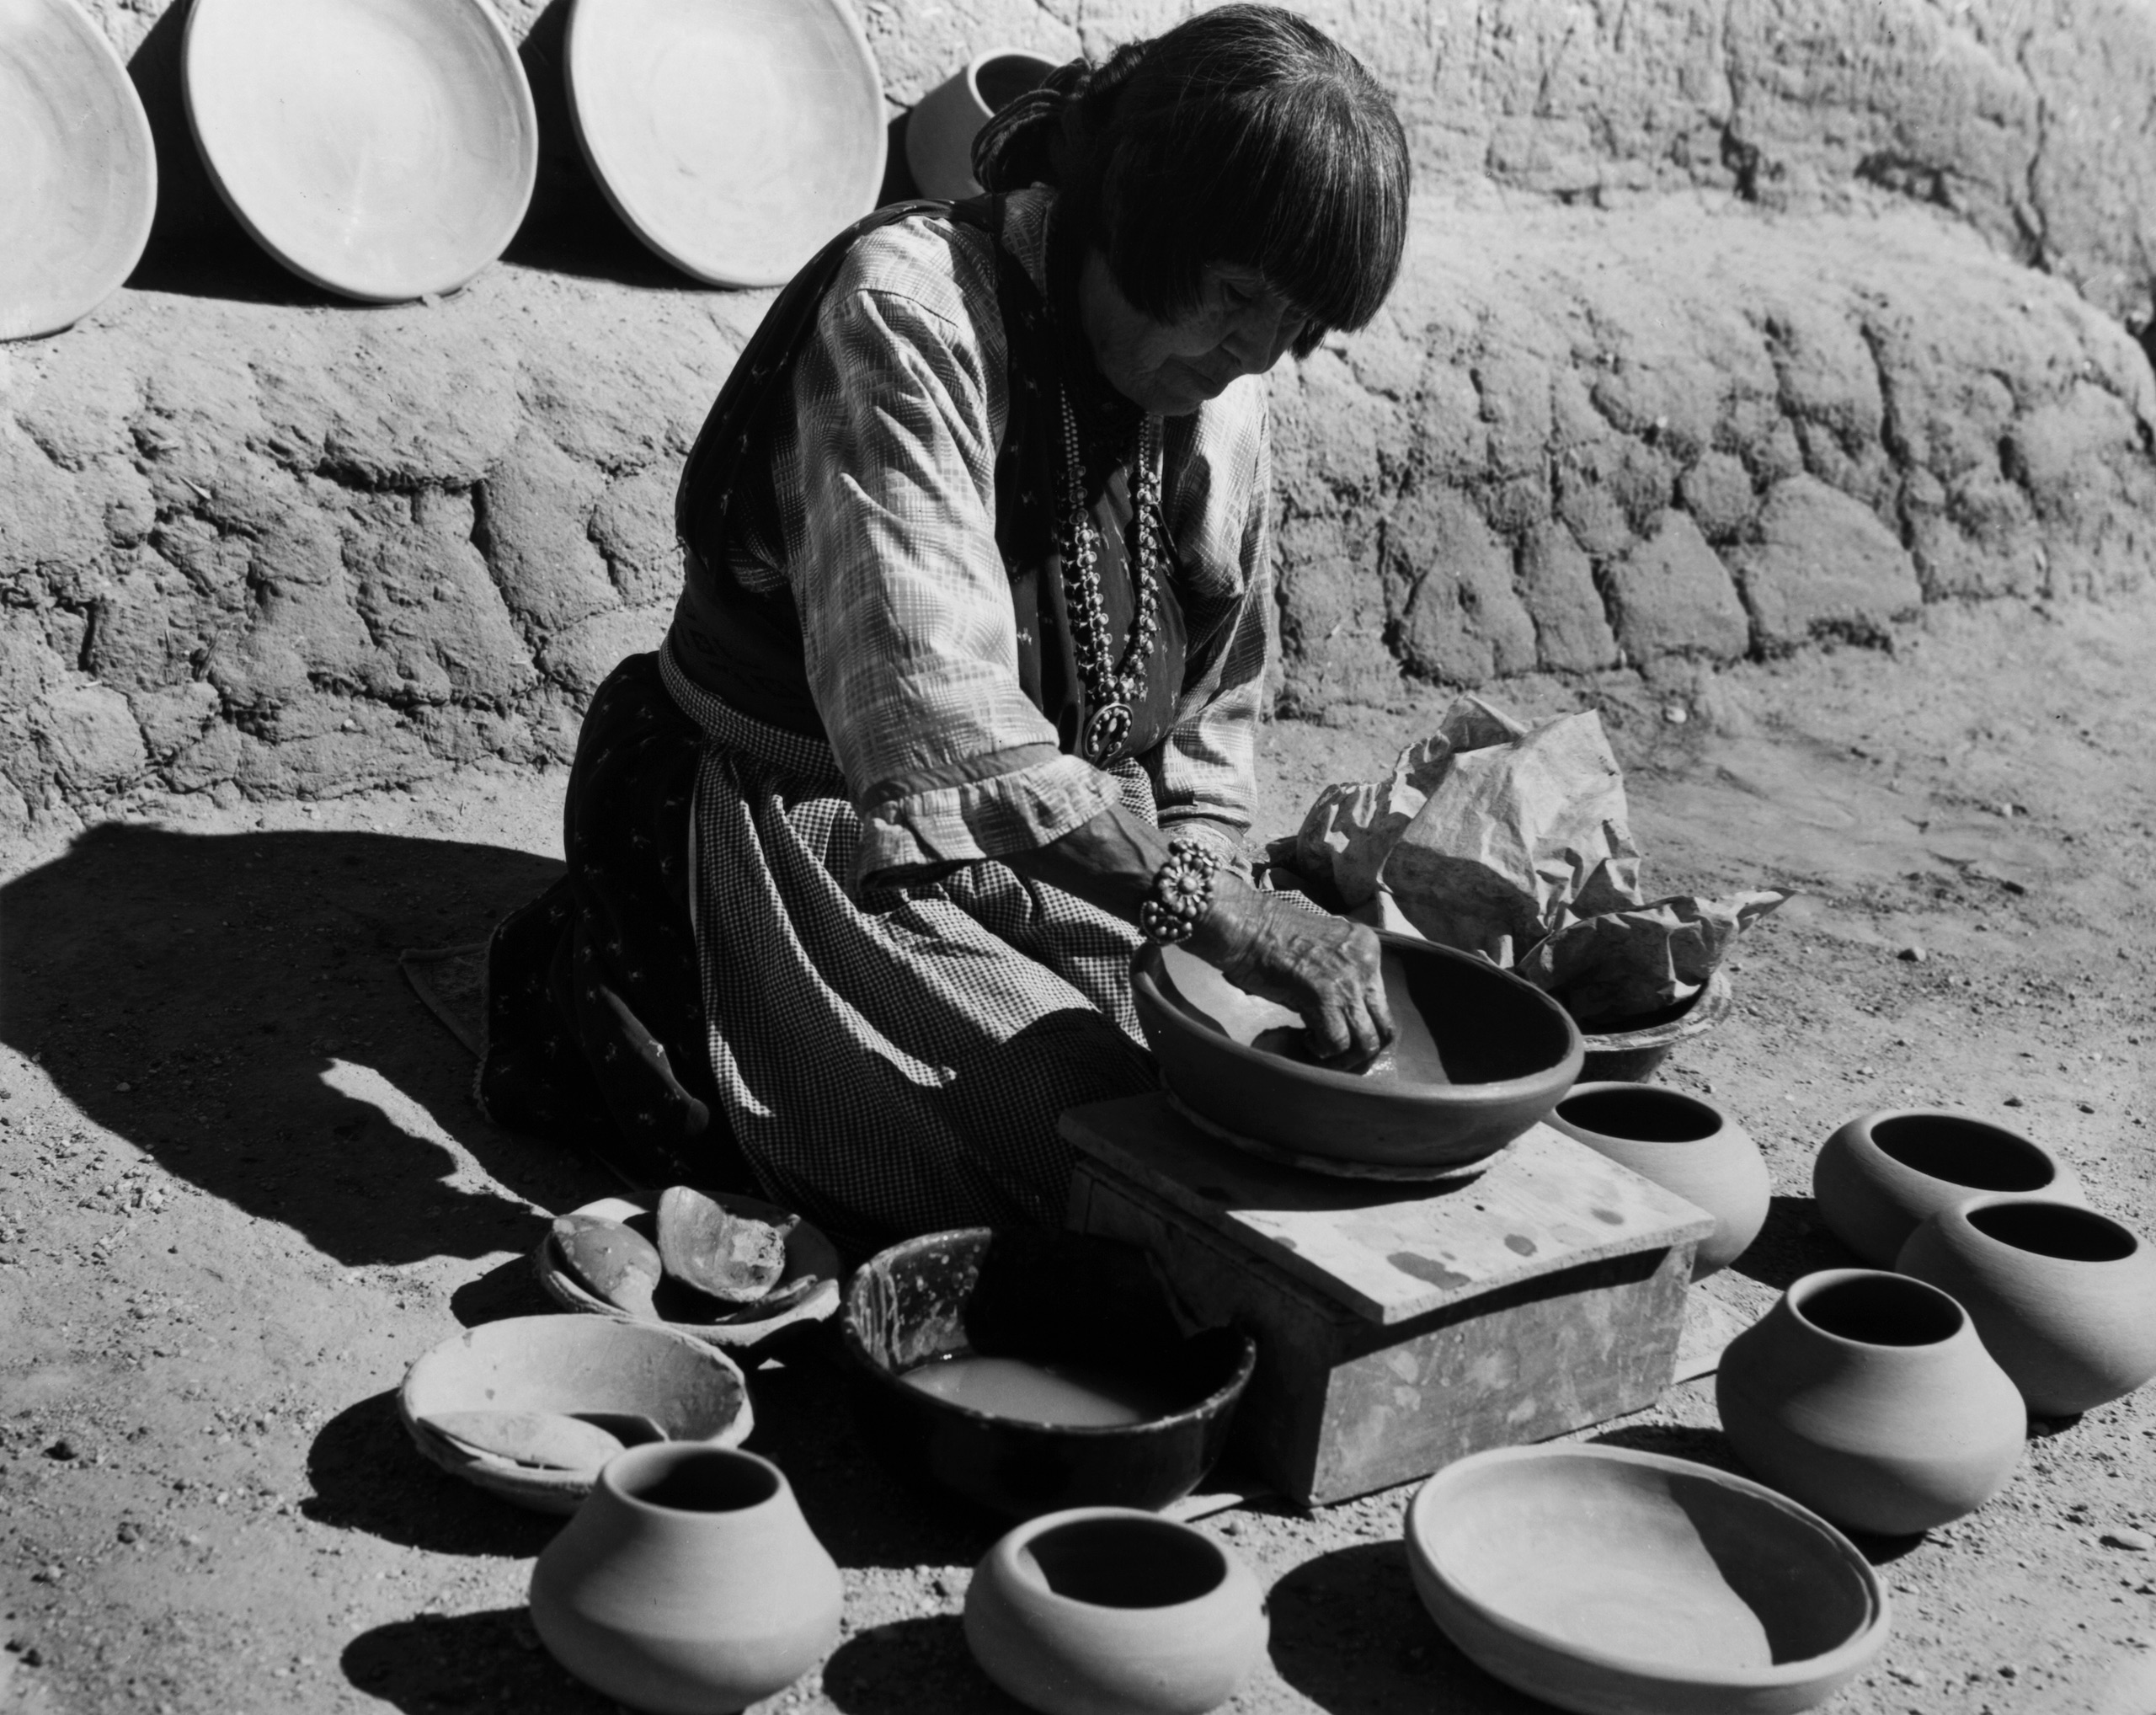 Black and white photograph of woman with medium skin tone making pottery.